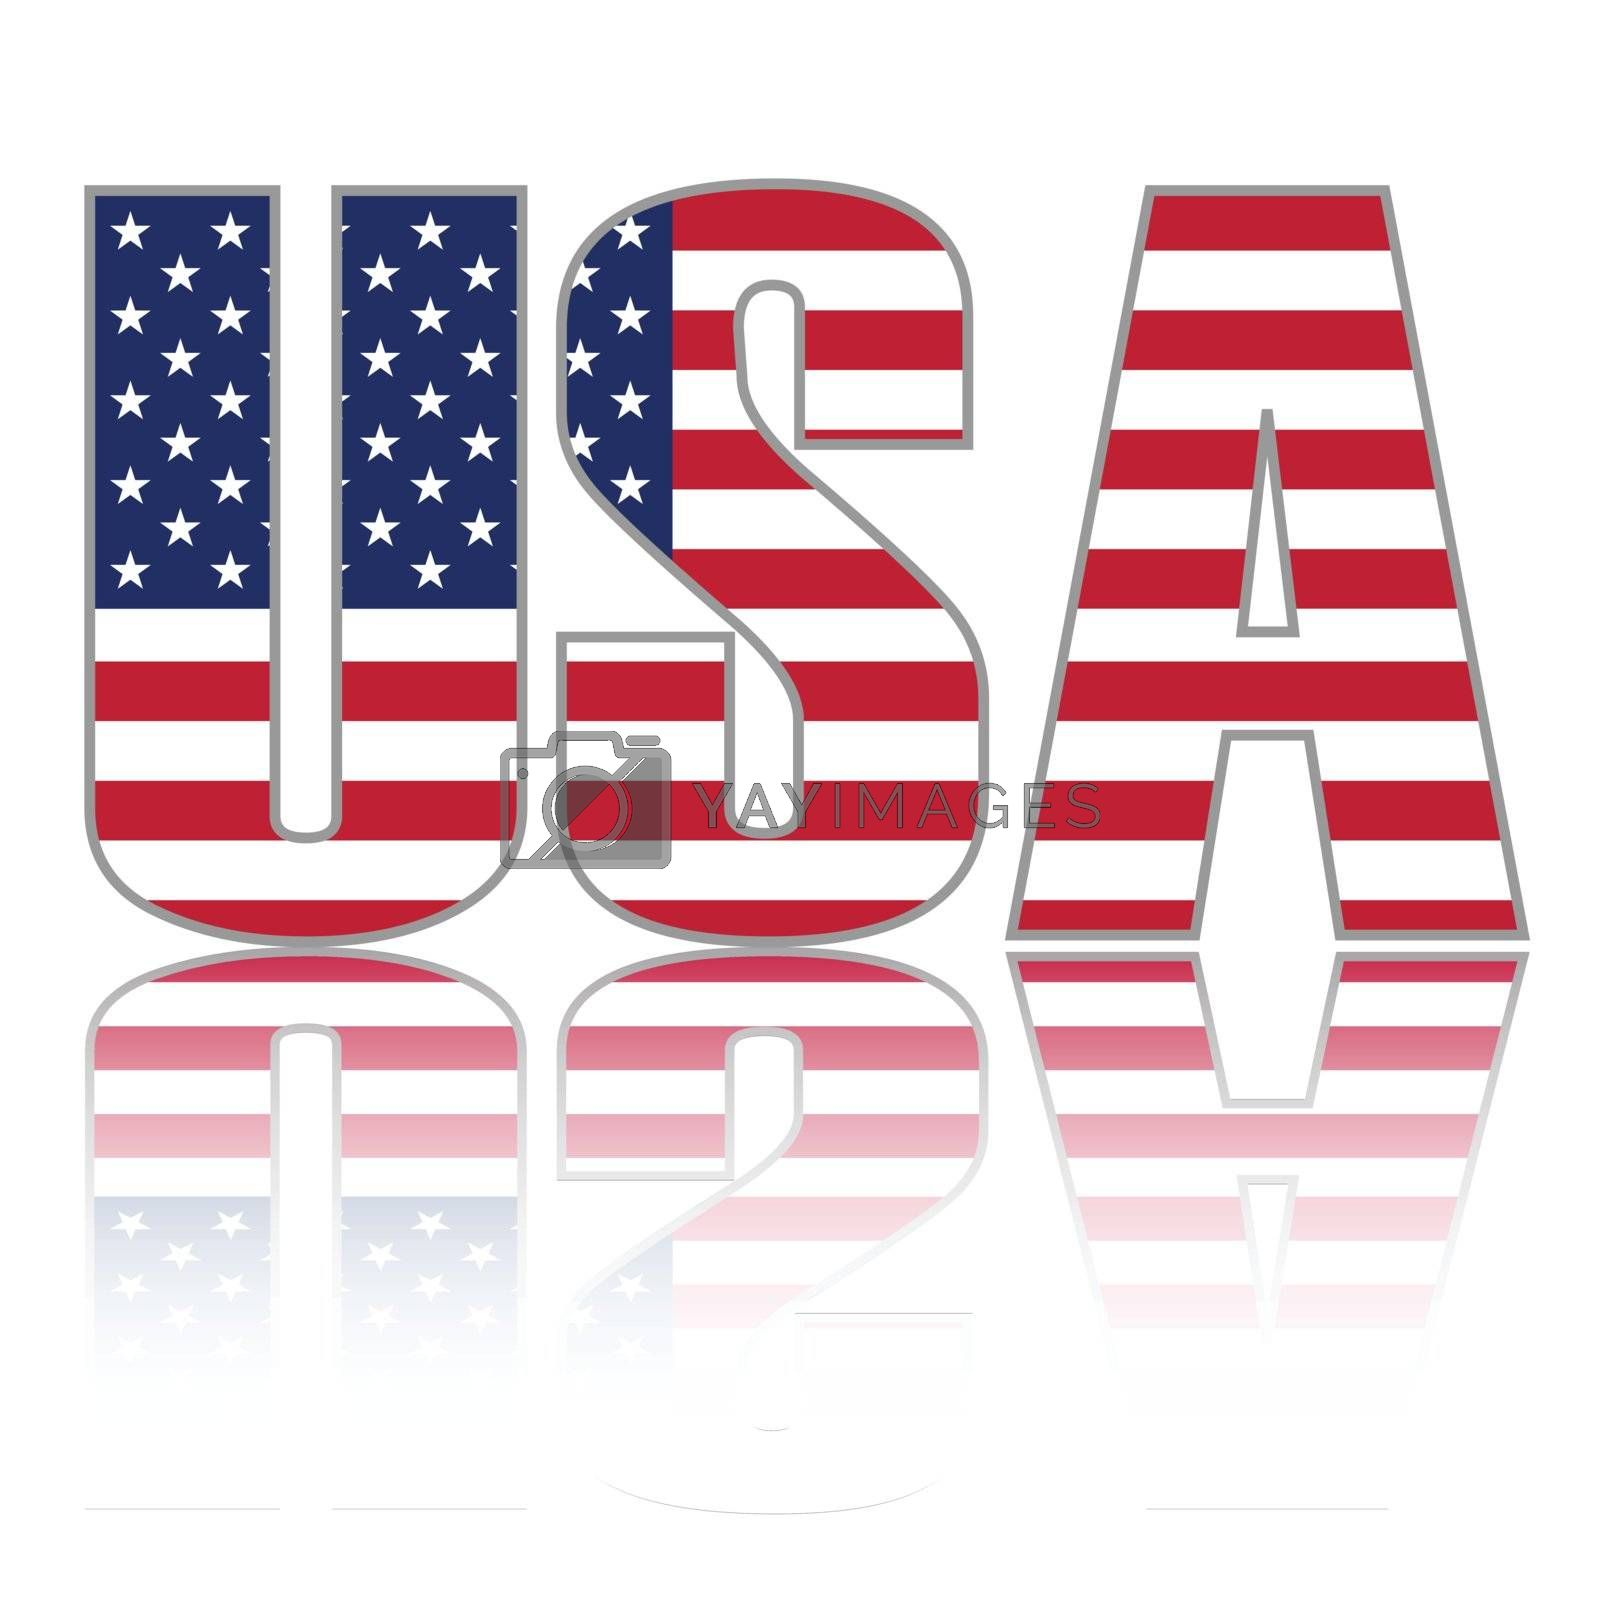 USA word with flag and reflection.